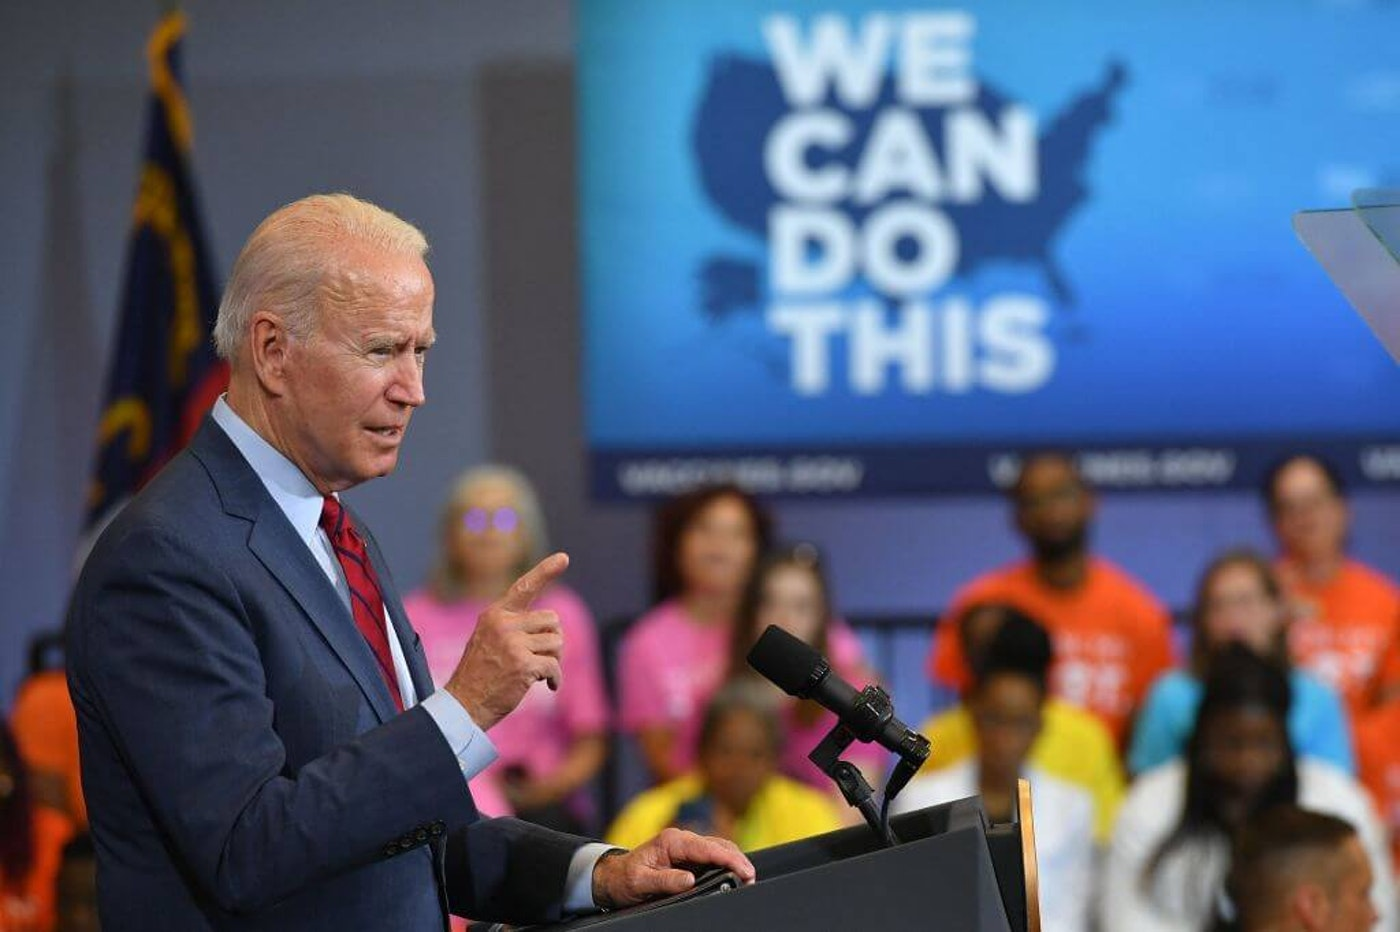 US President Joe Biden speaks after visiting a mobile vaccination unit at the Green Road Community Center in  Raleigh, North Carolina on June 24, 2021. (Photo by MANDEL NGAN / AFP) (Photo by MANDEL NGAN/AFP via Getty Images)